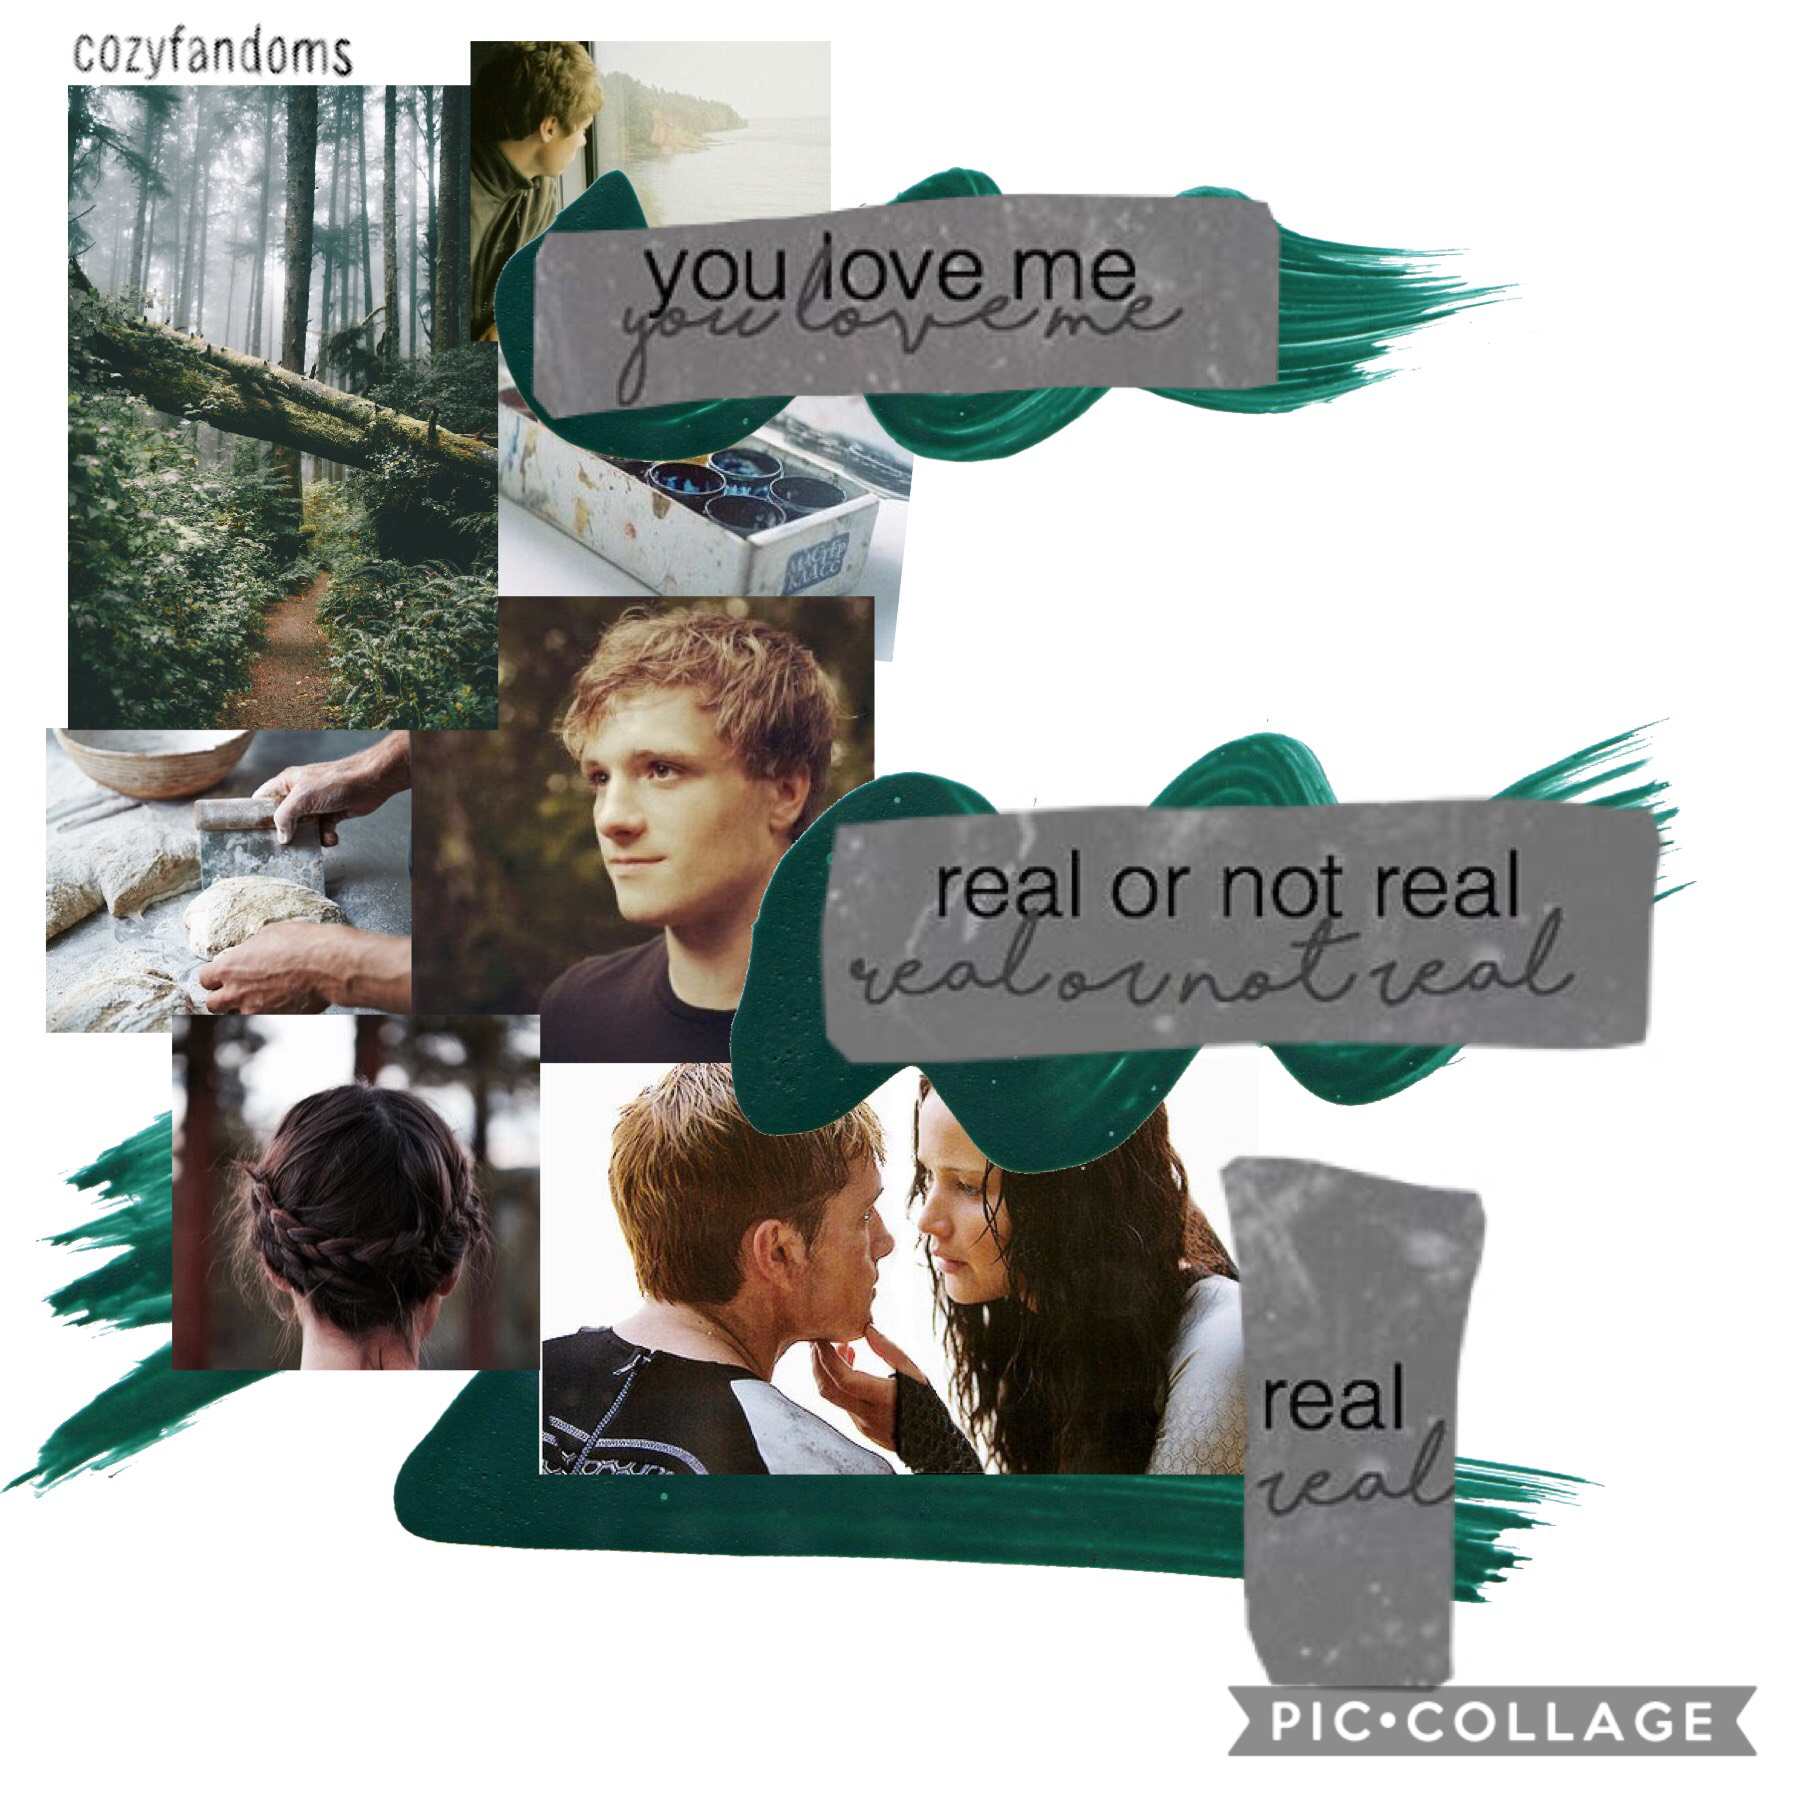 9/18/18 Sooooo, haven't posted lately. School isn't really busy so I have no excuse. Yep...this was an old entry to GrangerPotterMalfoys games. Honestly I'm in a really great emotional place rn...so happy...:)